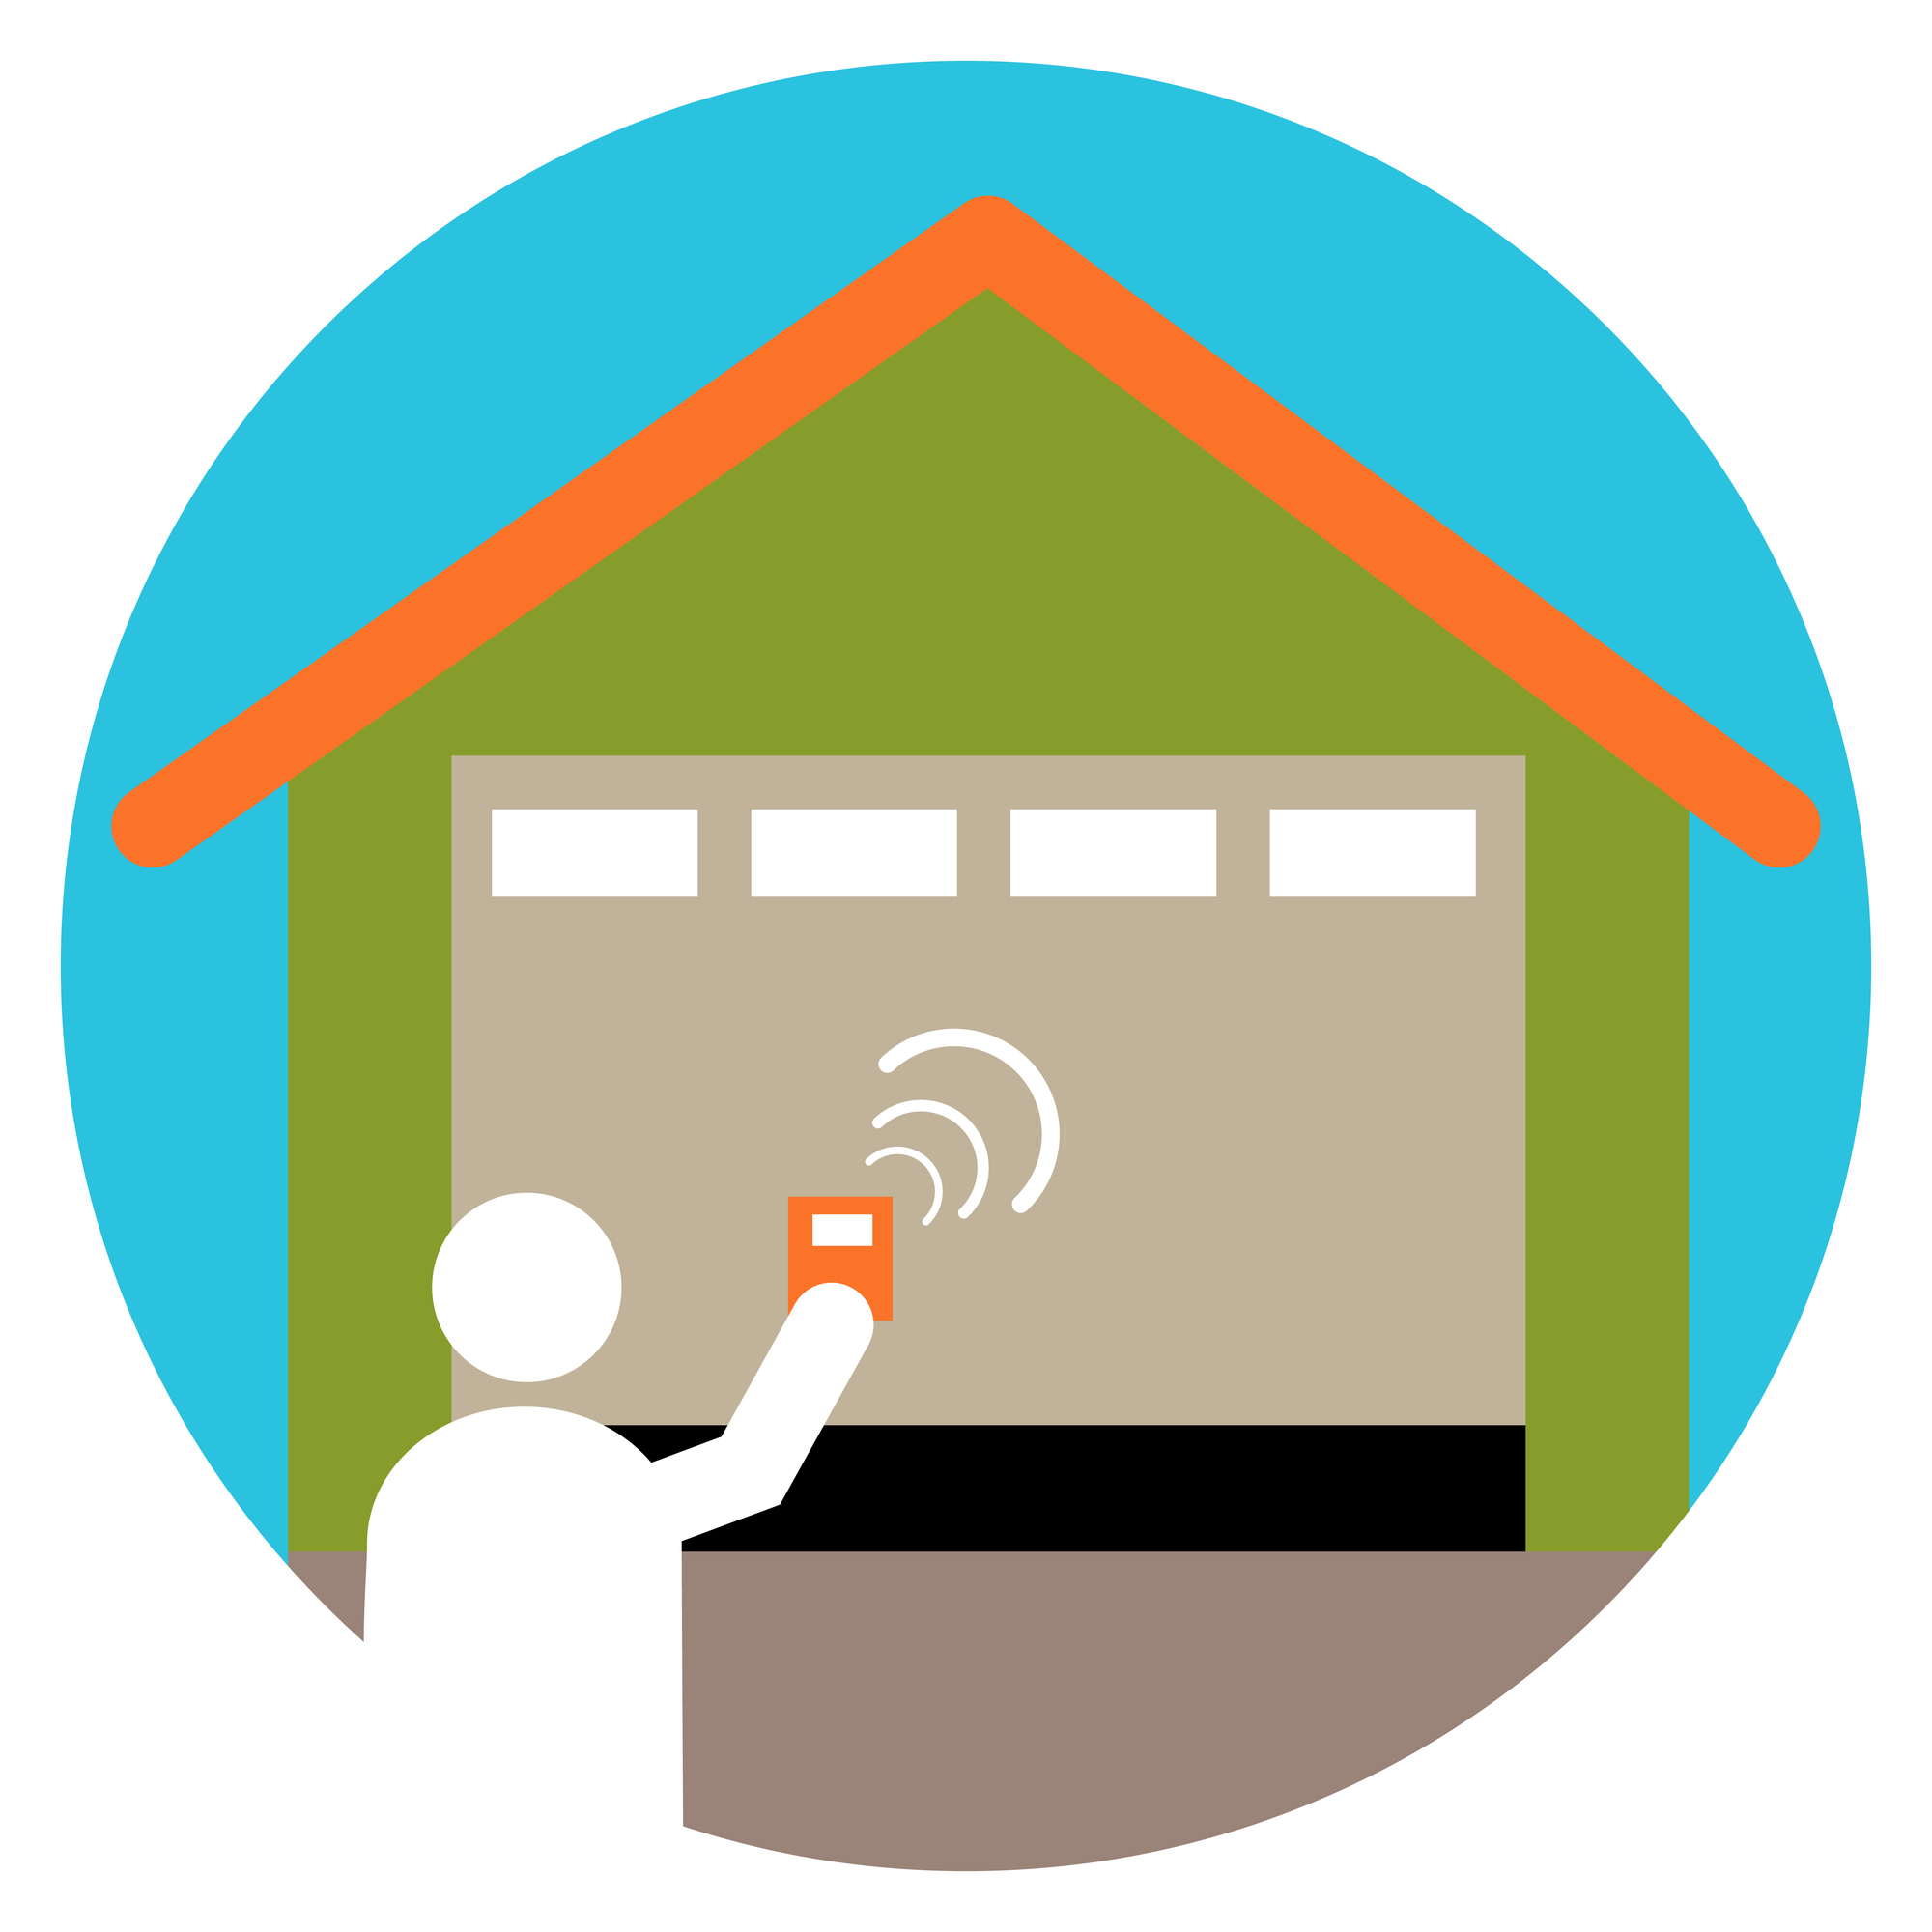 Some Advanced Features to Expect from a Wifi Garage Door Opener